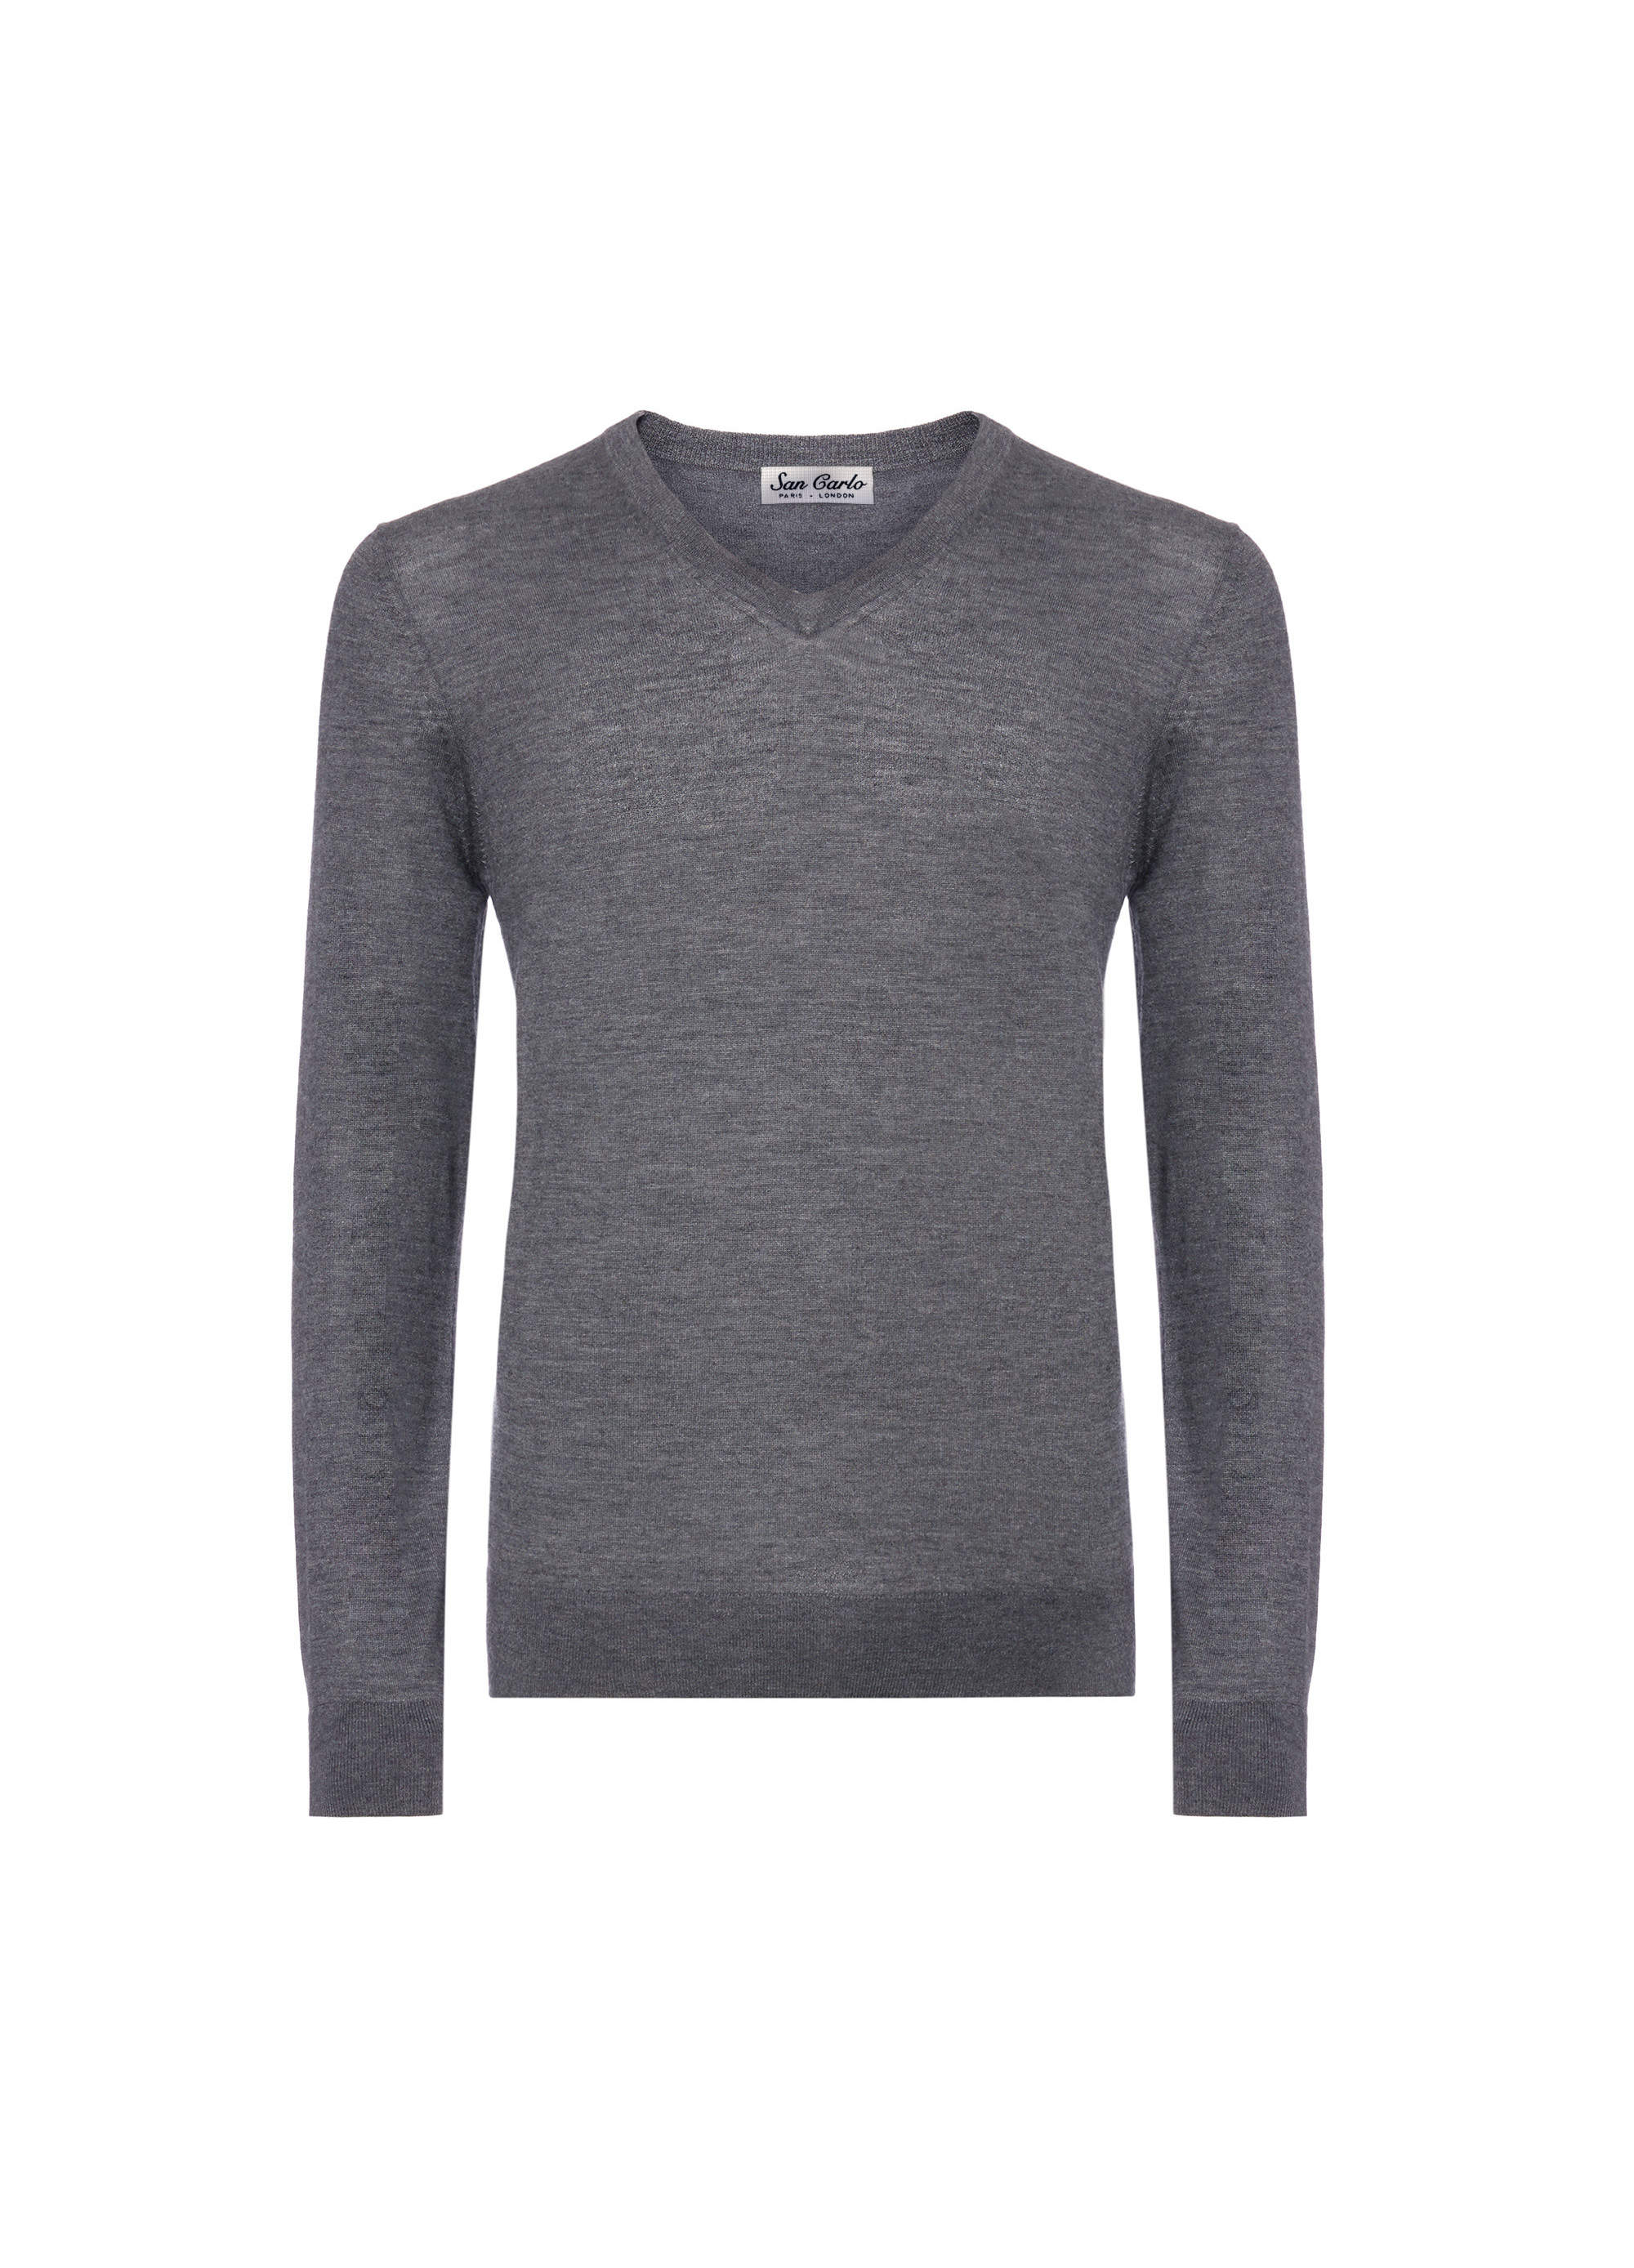 v-neck silk & cashmere grey 02.jpg